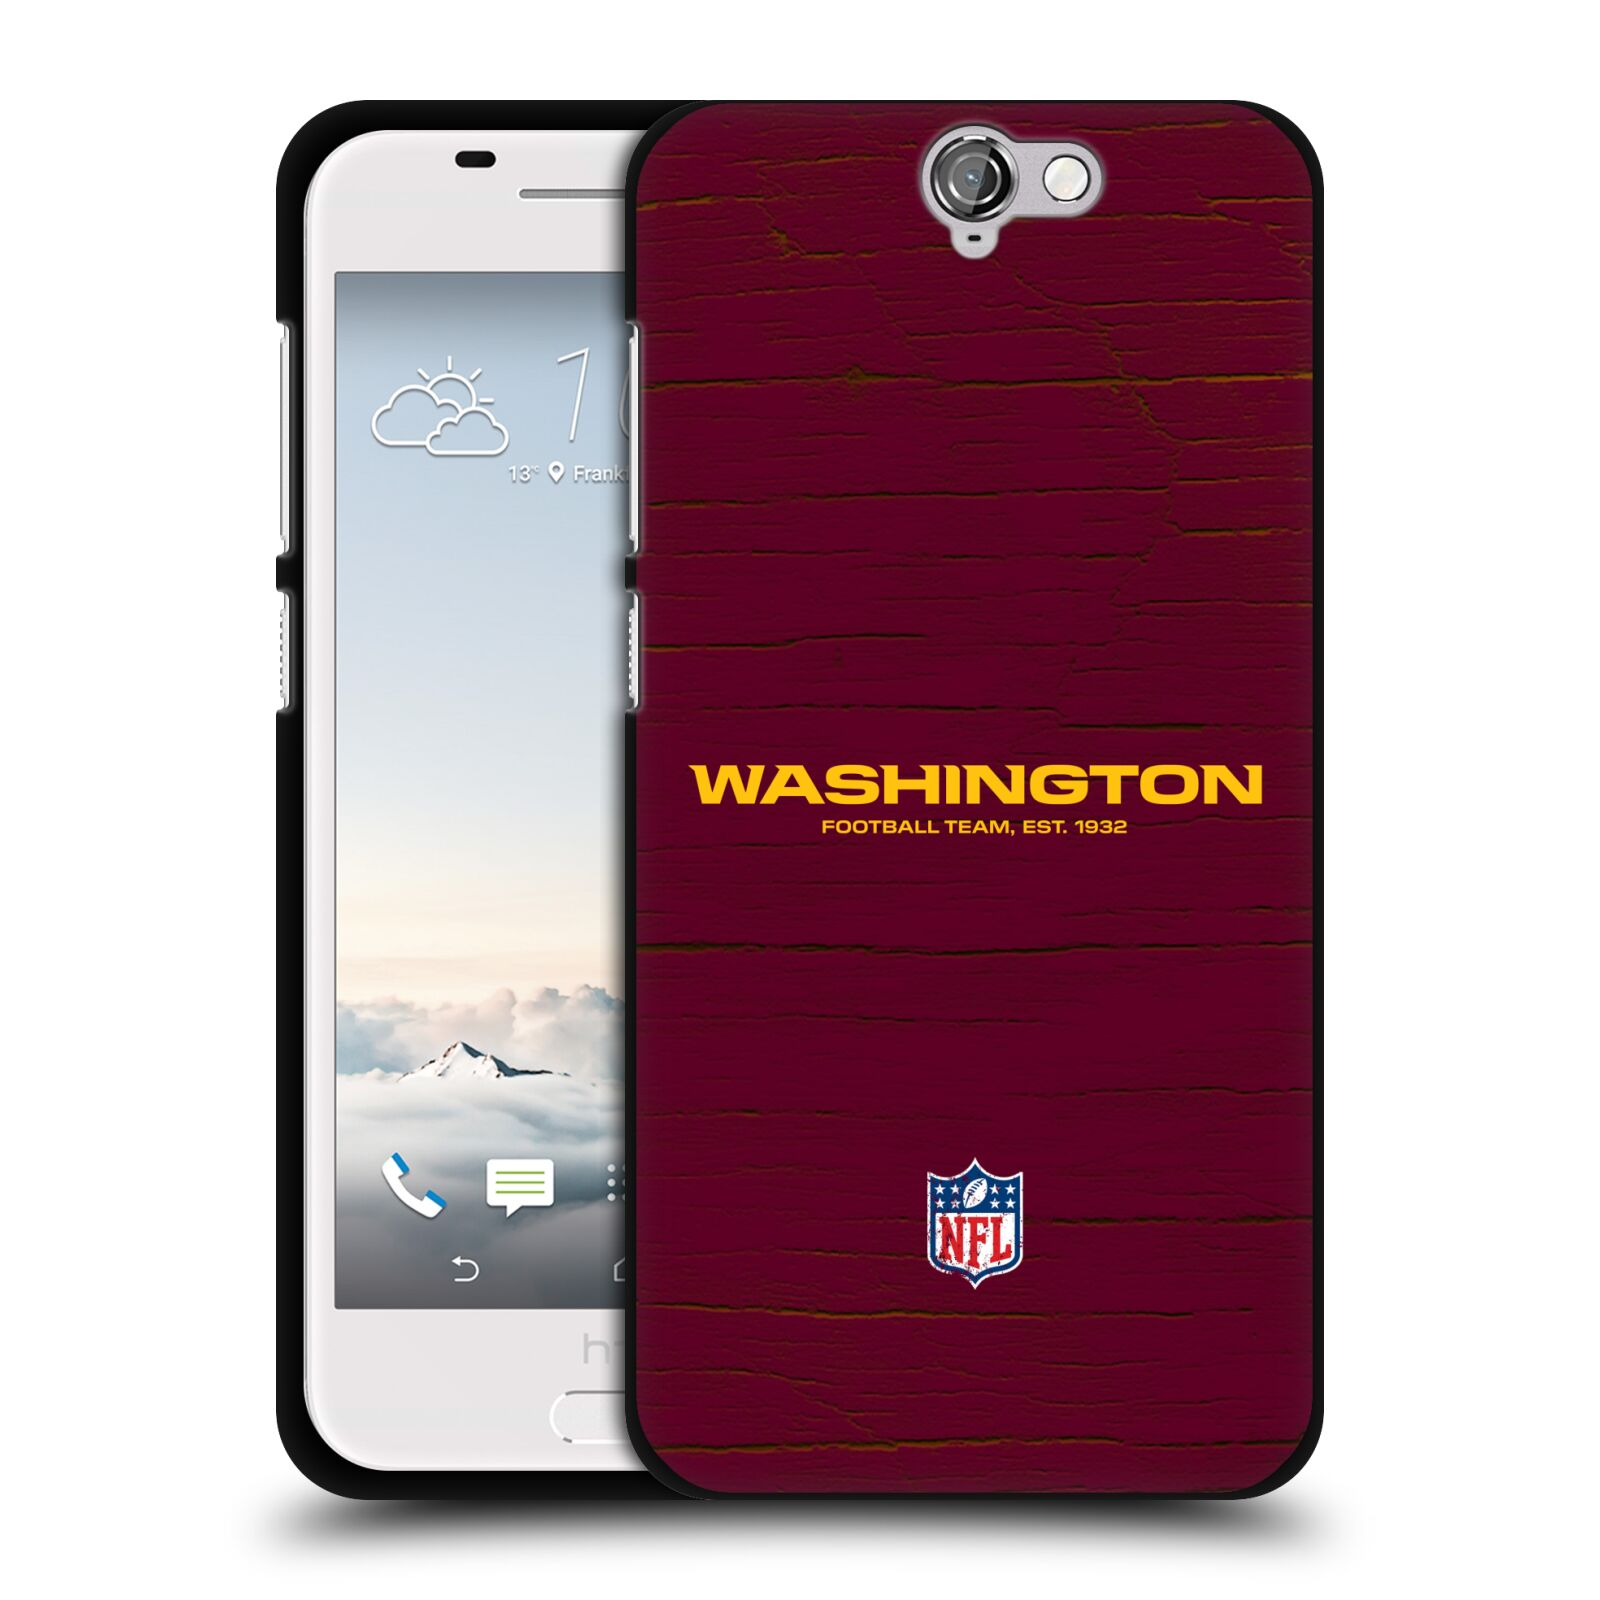 OFFICIAL-NFL-WASHINGTON-REDSKINS-LOGO-BLACK-SOFT-GEL-CASE-FOR-HTC-PHONES